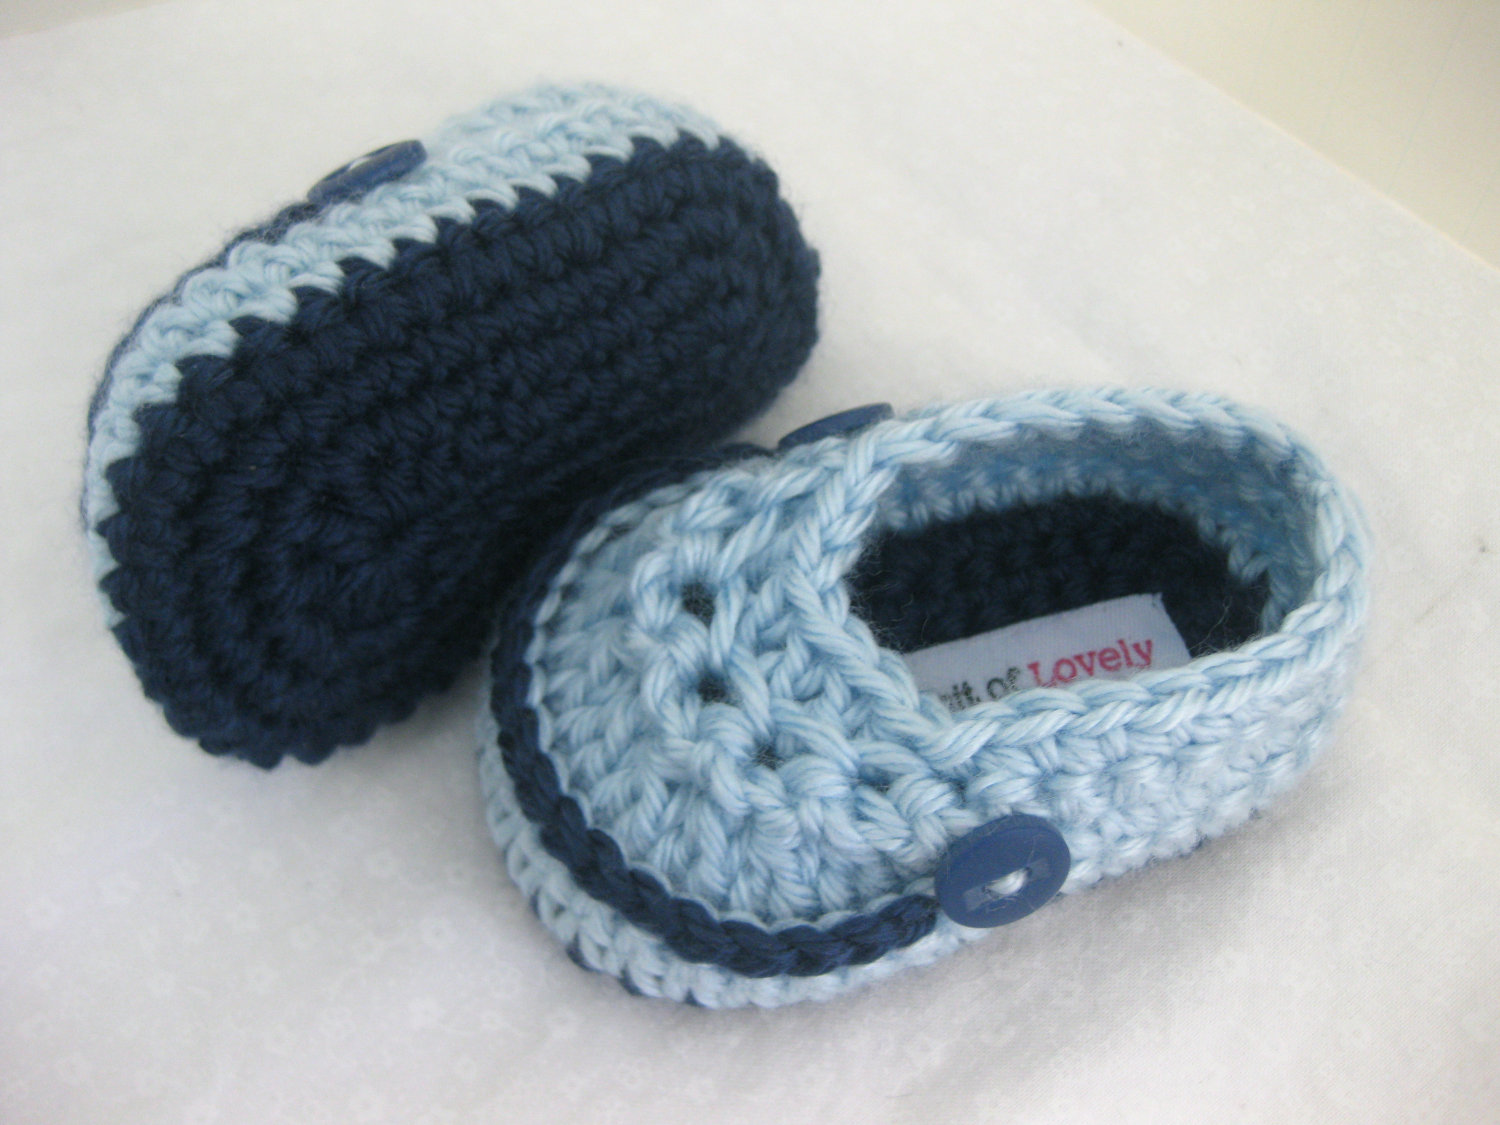 Infant Booties Knit Knitted Baby Shoes Crochet For Girls/boys Newborn. Brand New. $ From China. Was: Previous Price $ Buy It Now. Free Shipping. Toddler Newborn Baby Girls Boys Knit Crochet Shoes Winter Warm Crib Handcraft. Brand New · Unbranded. $ From China. Buy It Now.